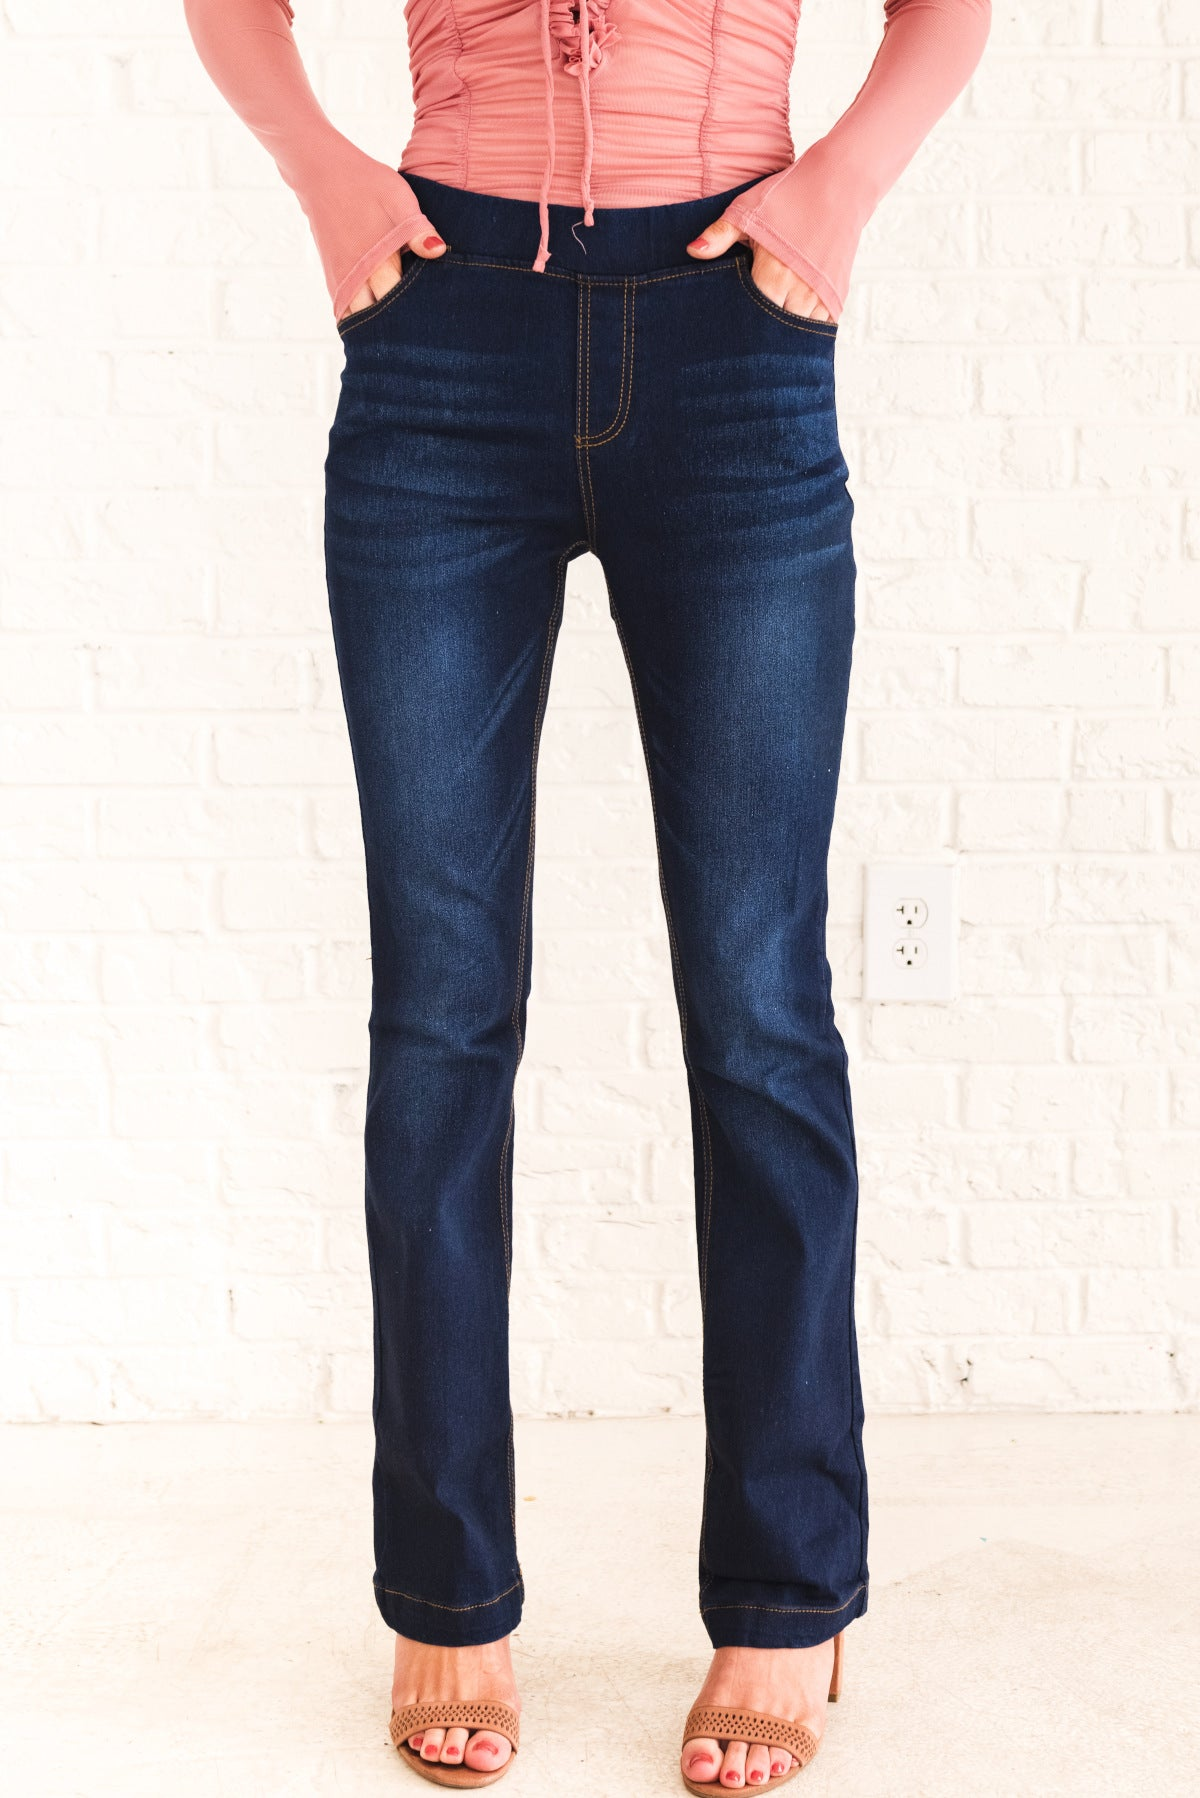 Dark Wash Denim Blue Flare Style Boutique Jeggings for Women